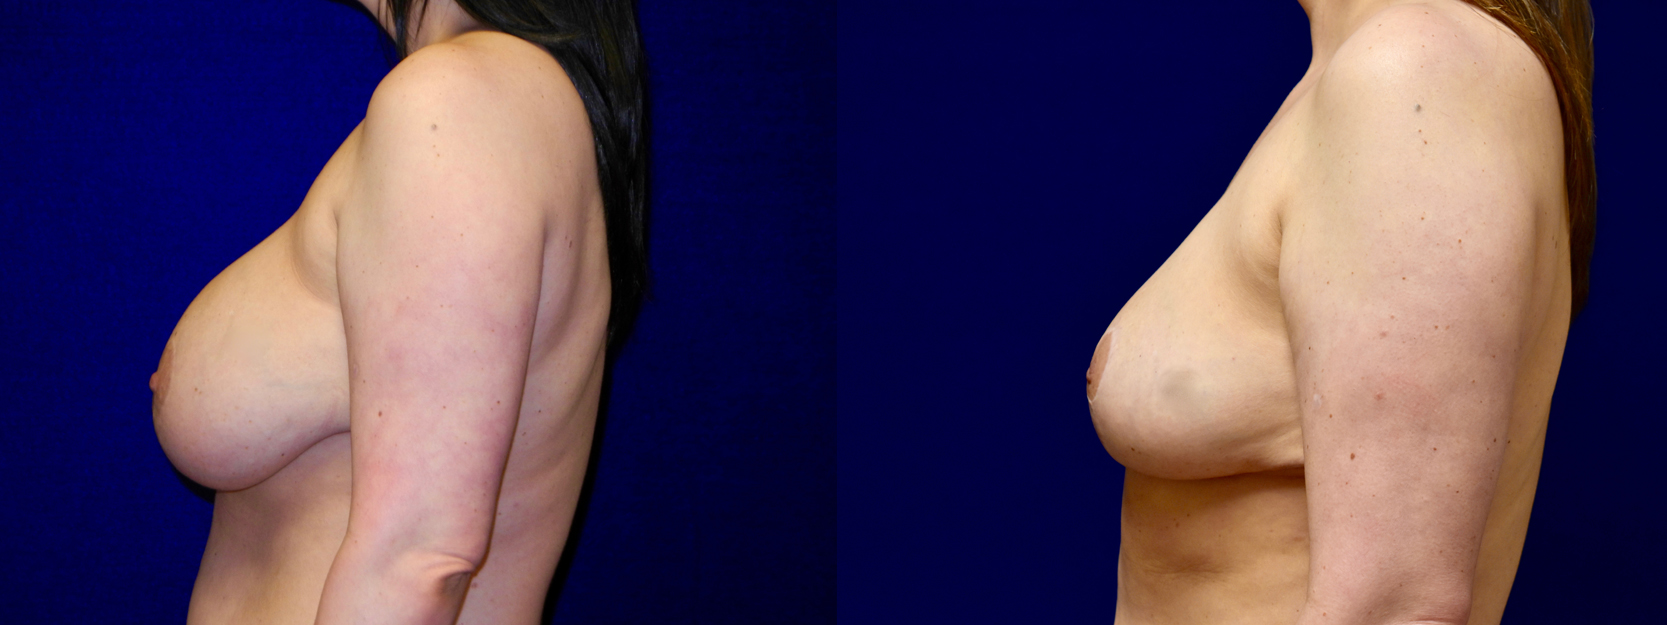 Left Profile View - Breast Implant Removal with Reduction and Lift